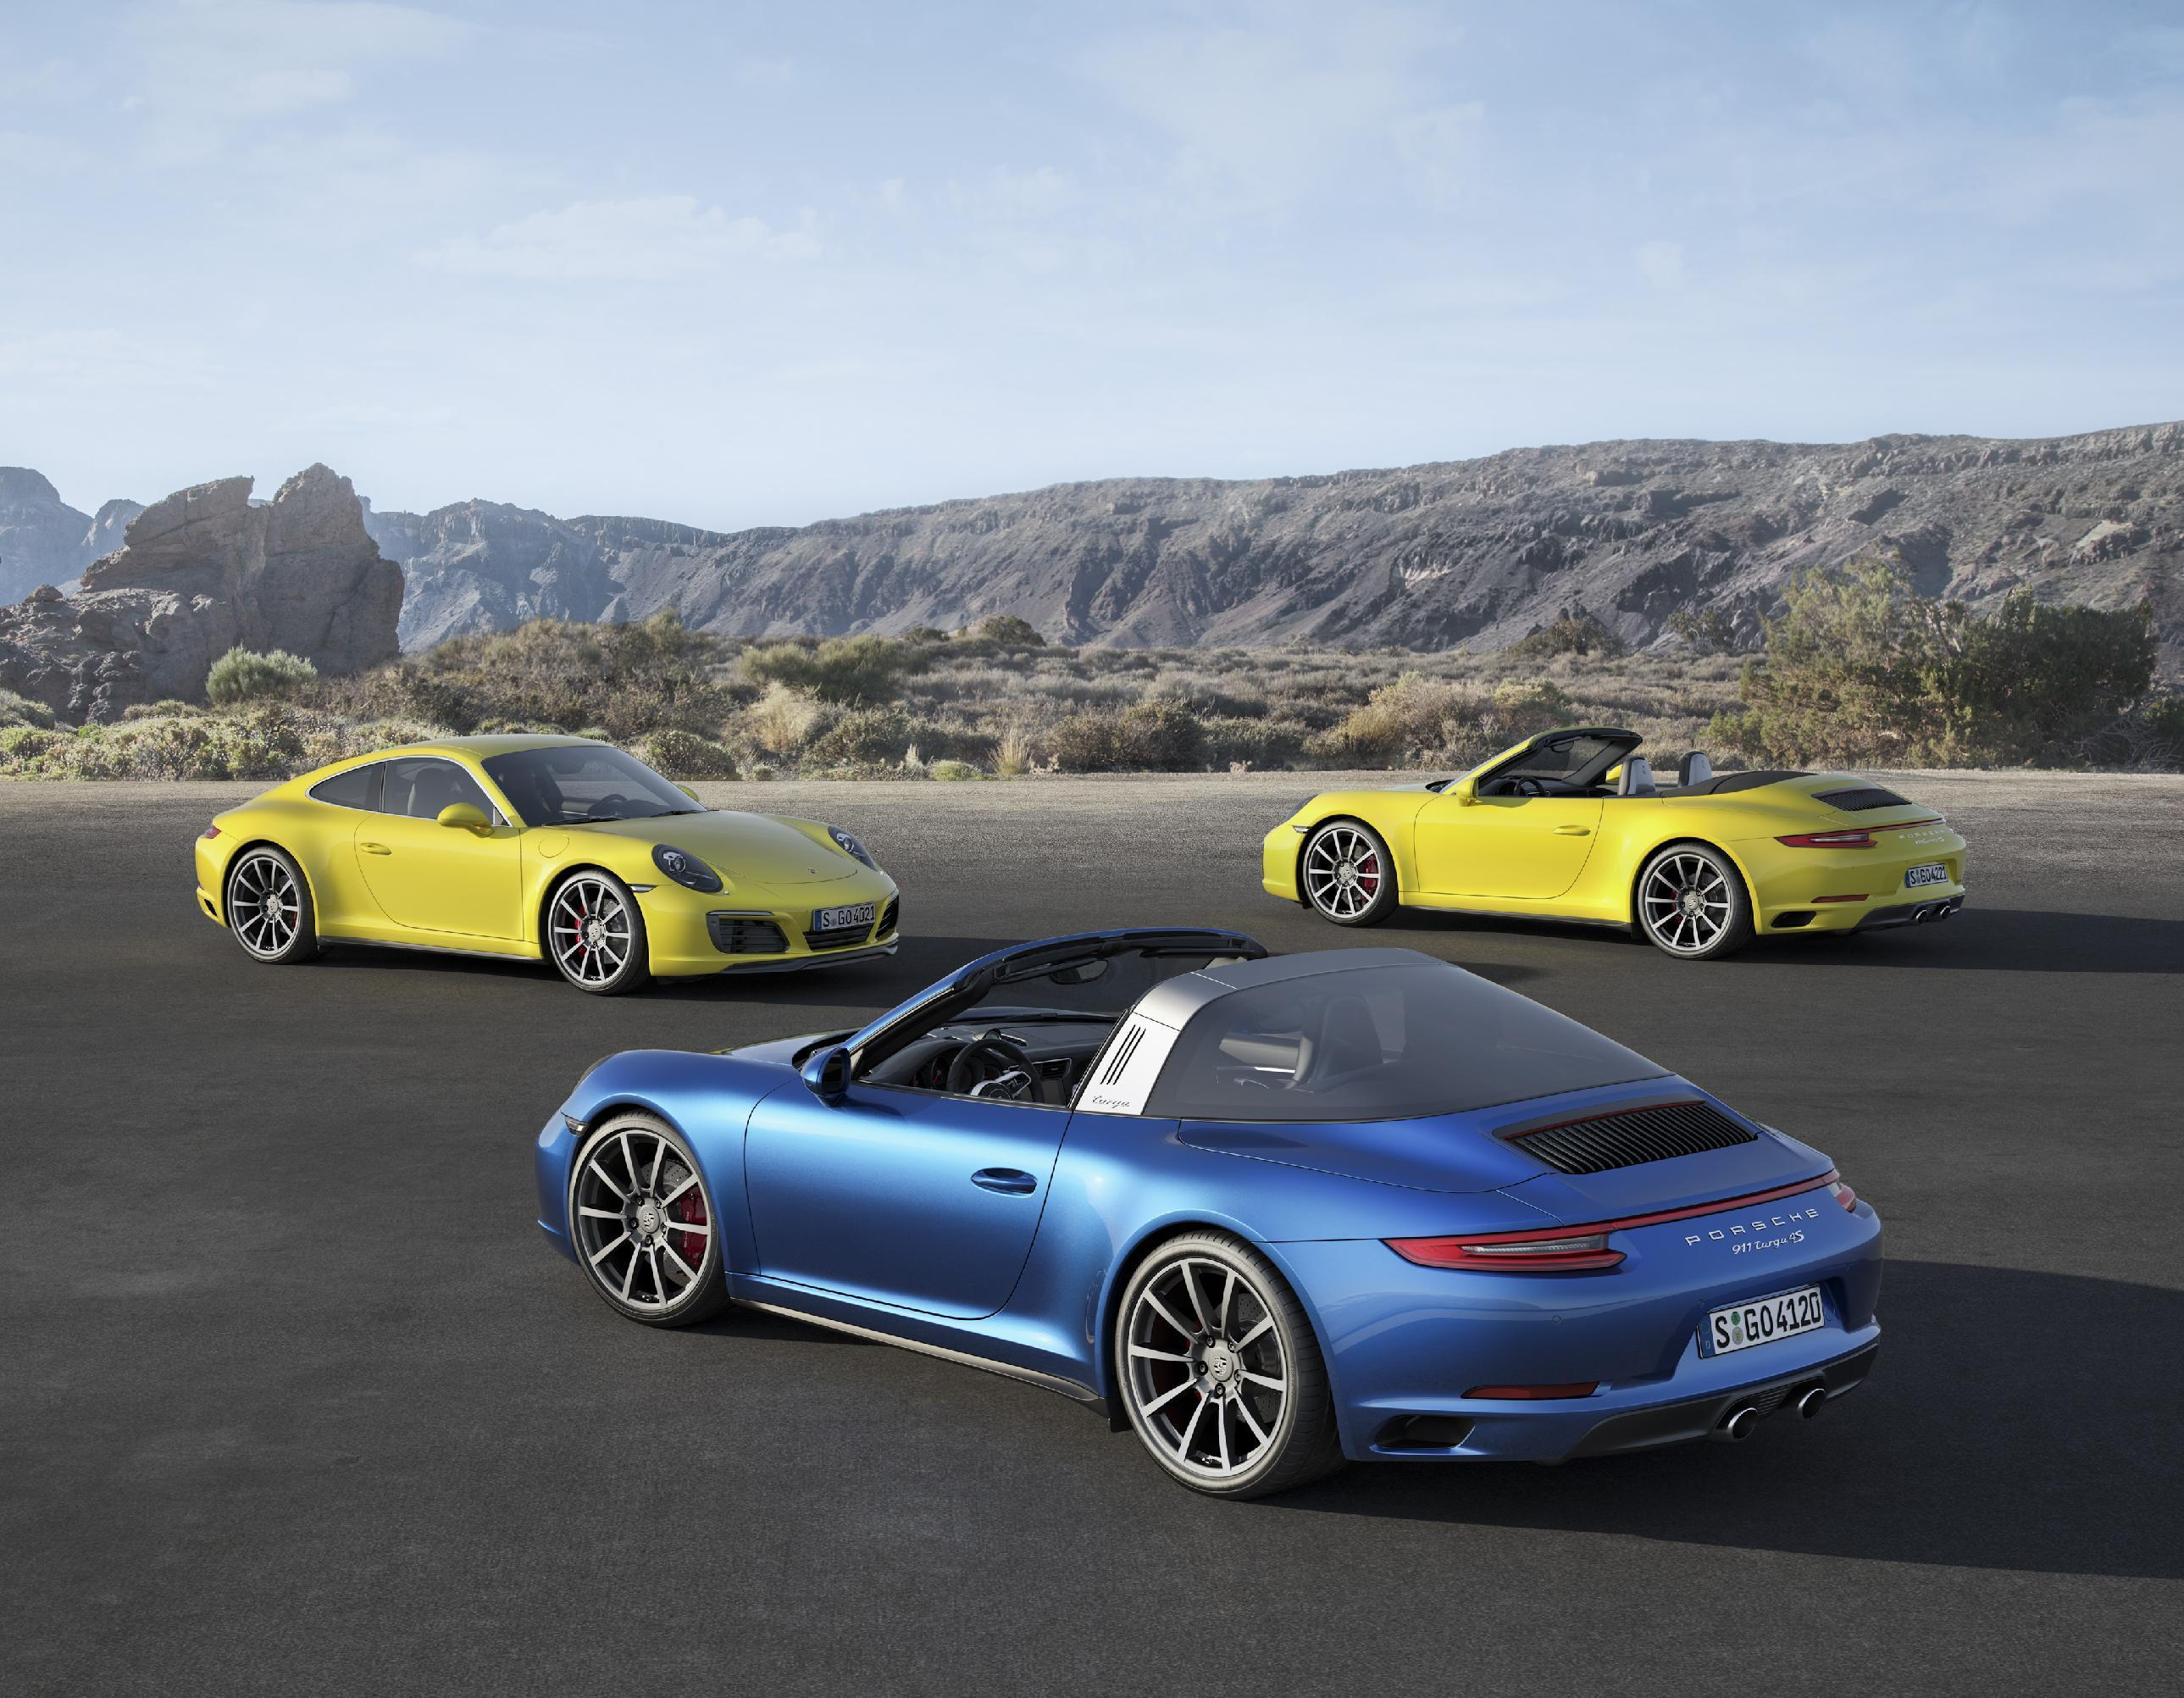 Porsche turbocharges ahead with new 911 models